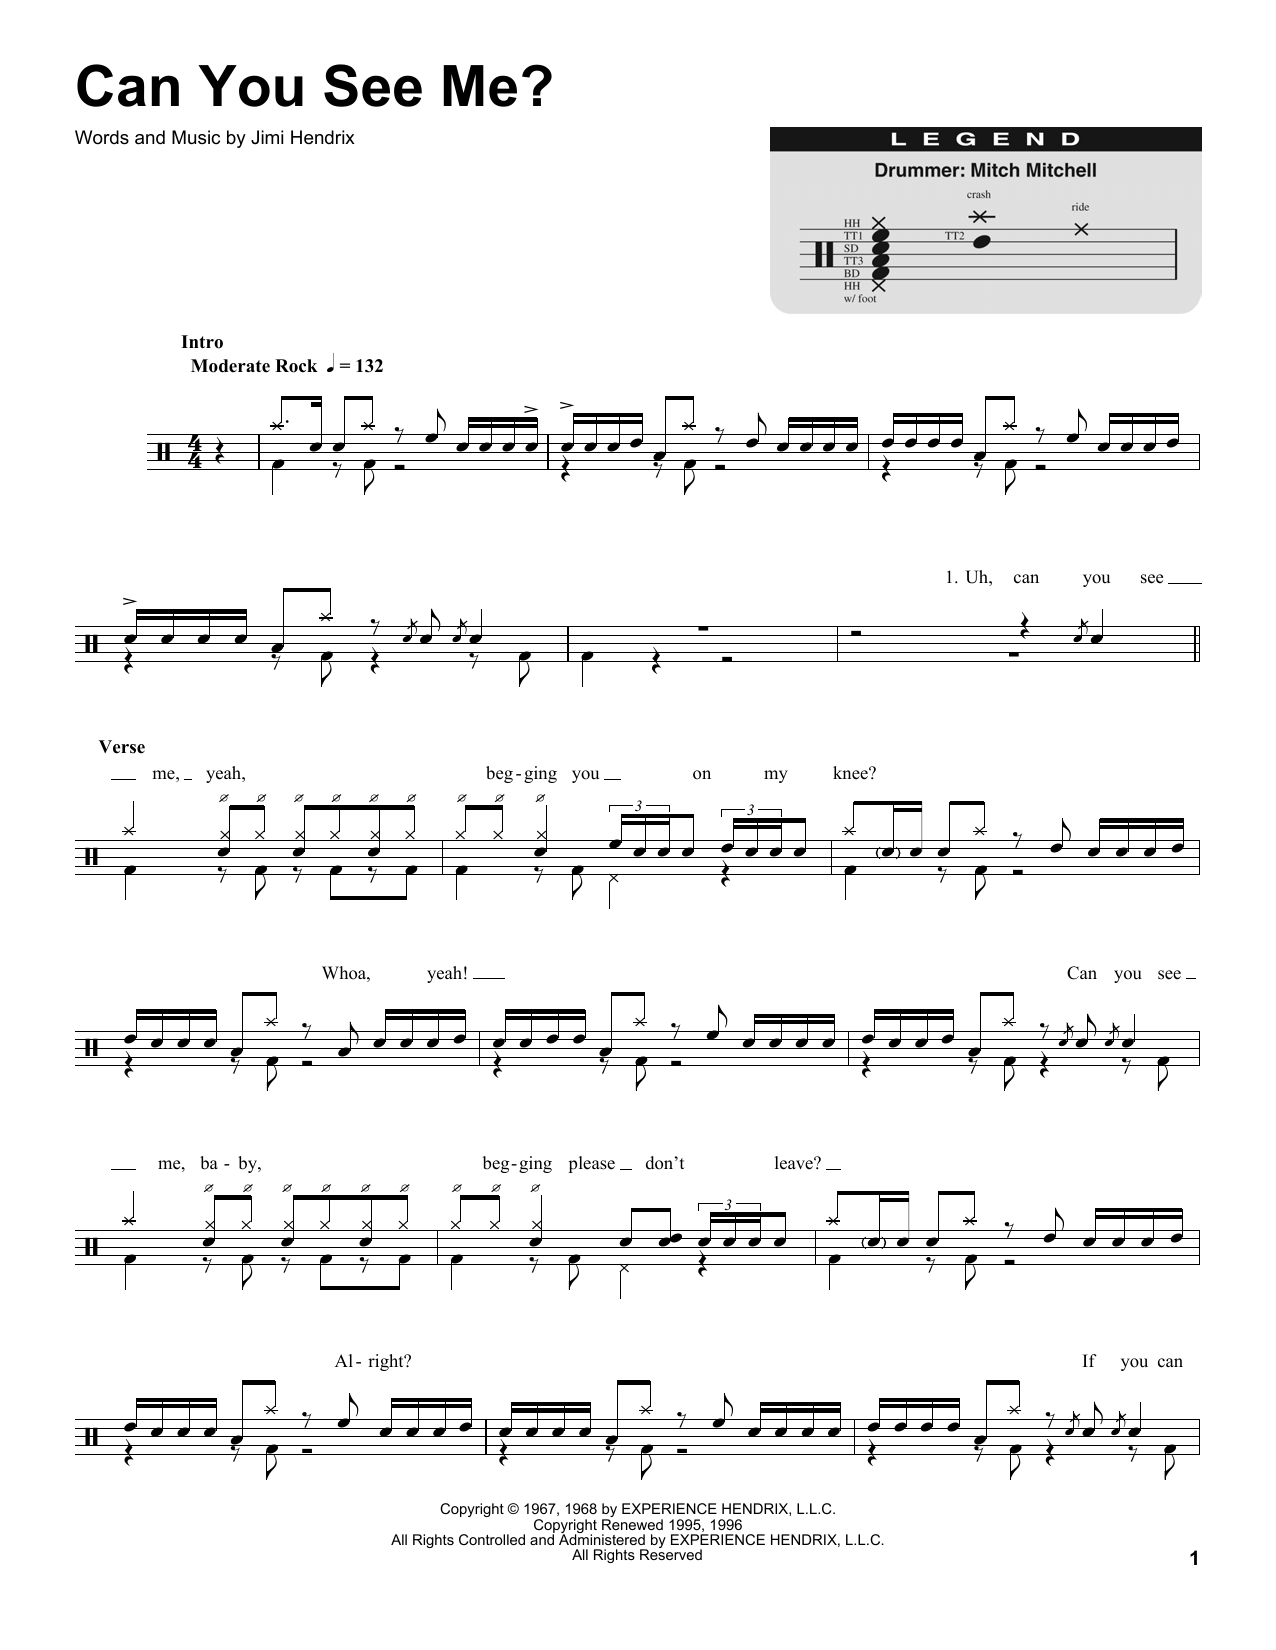 Can You See Me Sheet Music